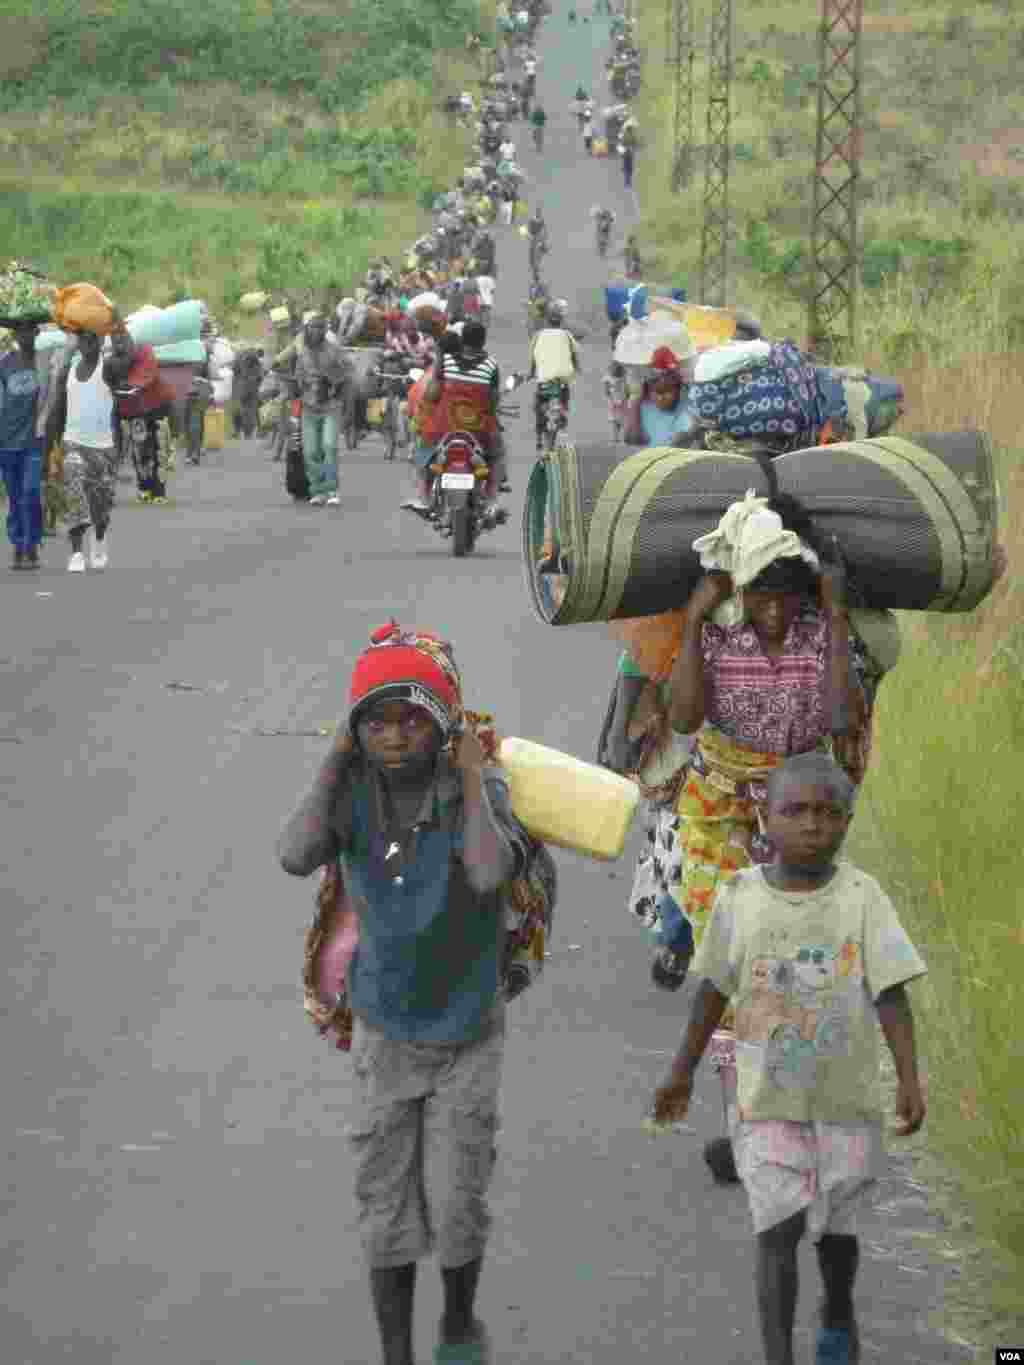 Fighting has displaced tens of thousands of people from the town of Sake, west of Goma, DRC, November 23, 2011. (G. Joselow/VOA)